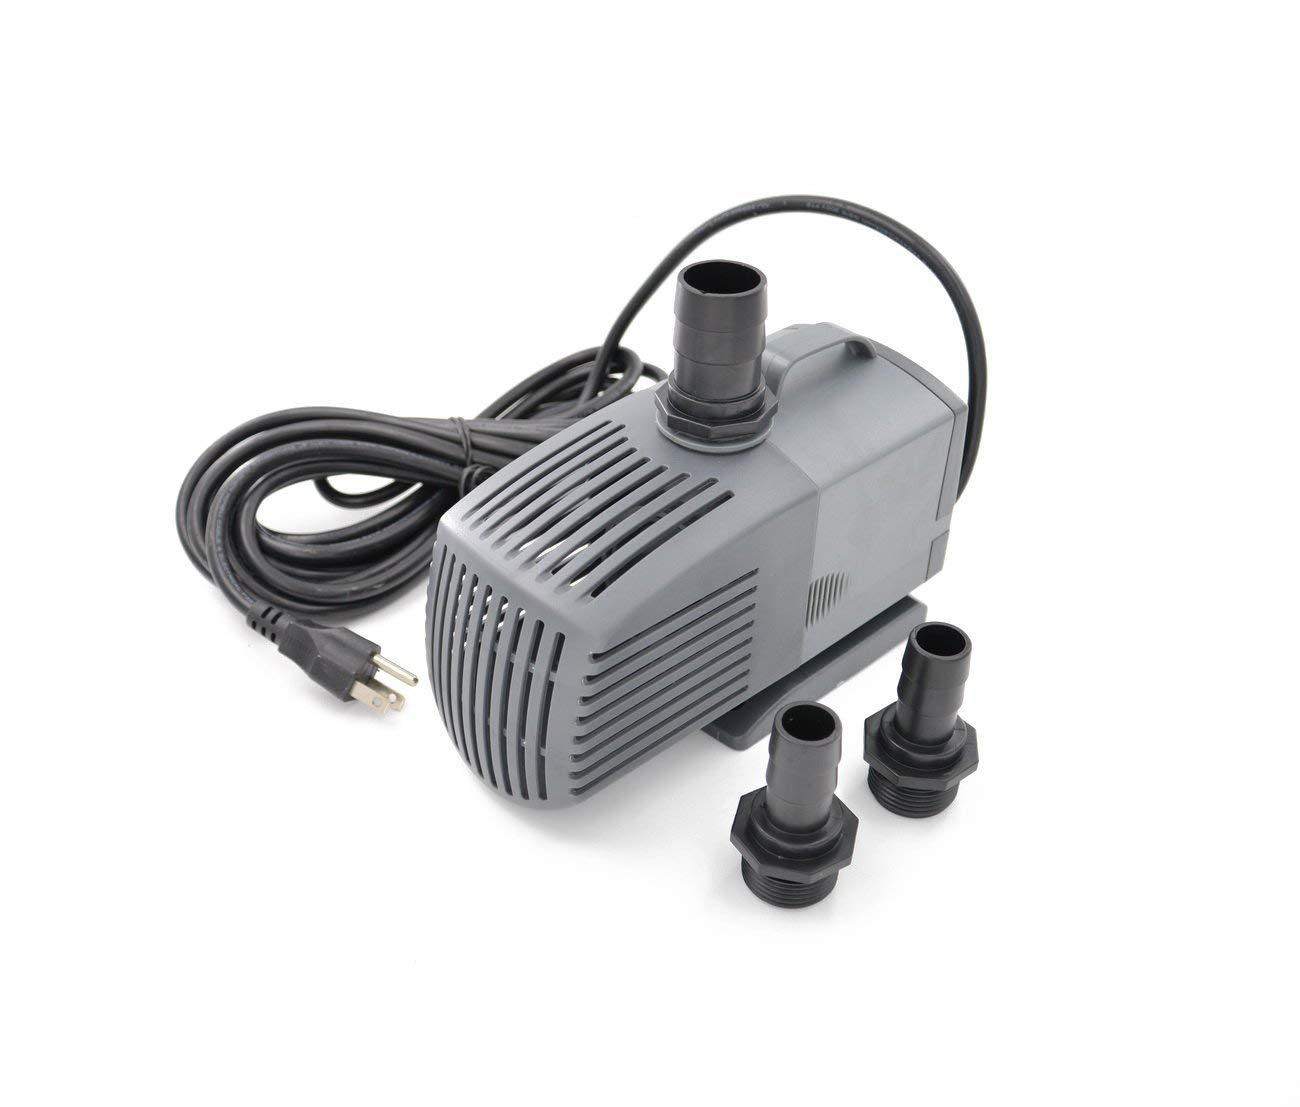 Jebao FA-4000F Series Submersible Fountain Pump with Pre-Filter 850GPH for Hydroponics, Aquaponics, Waterfall, Fish Pond